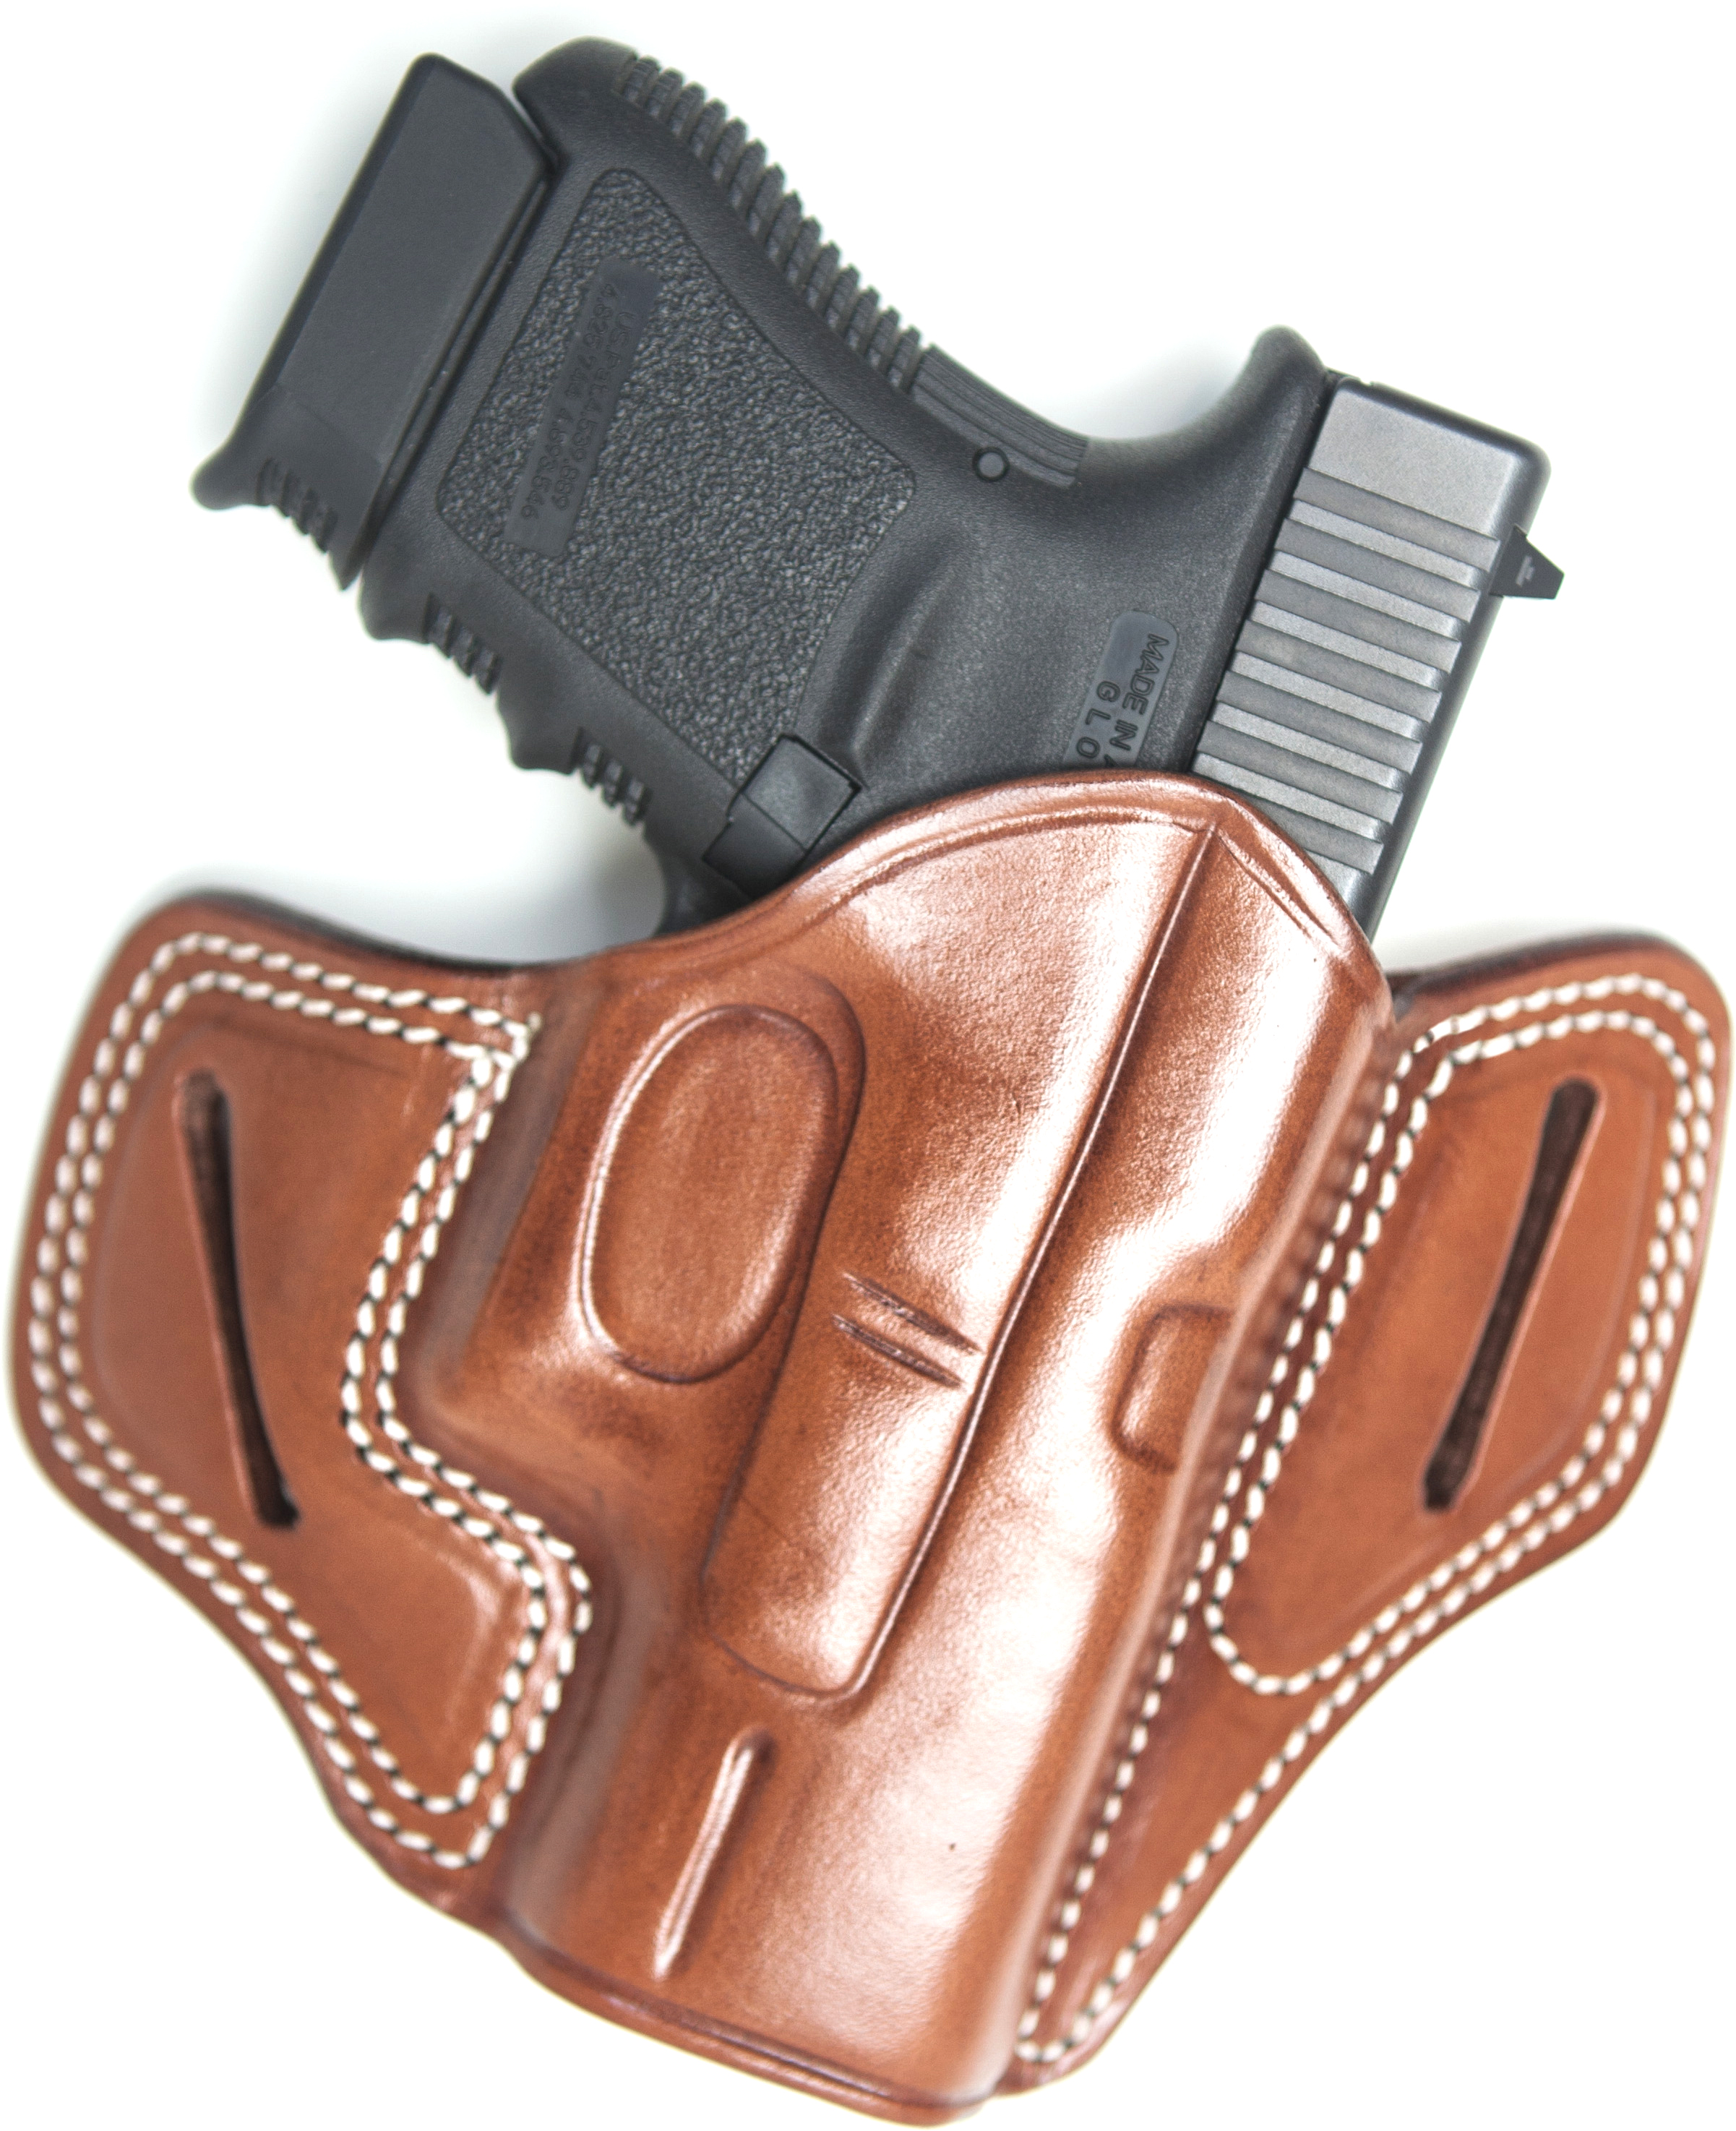 Cebeci Arms Tactical Grip Leather Pancake Holster for Ruger